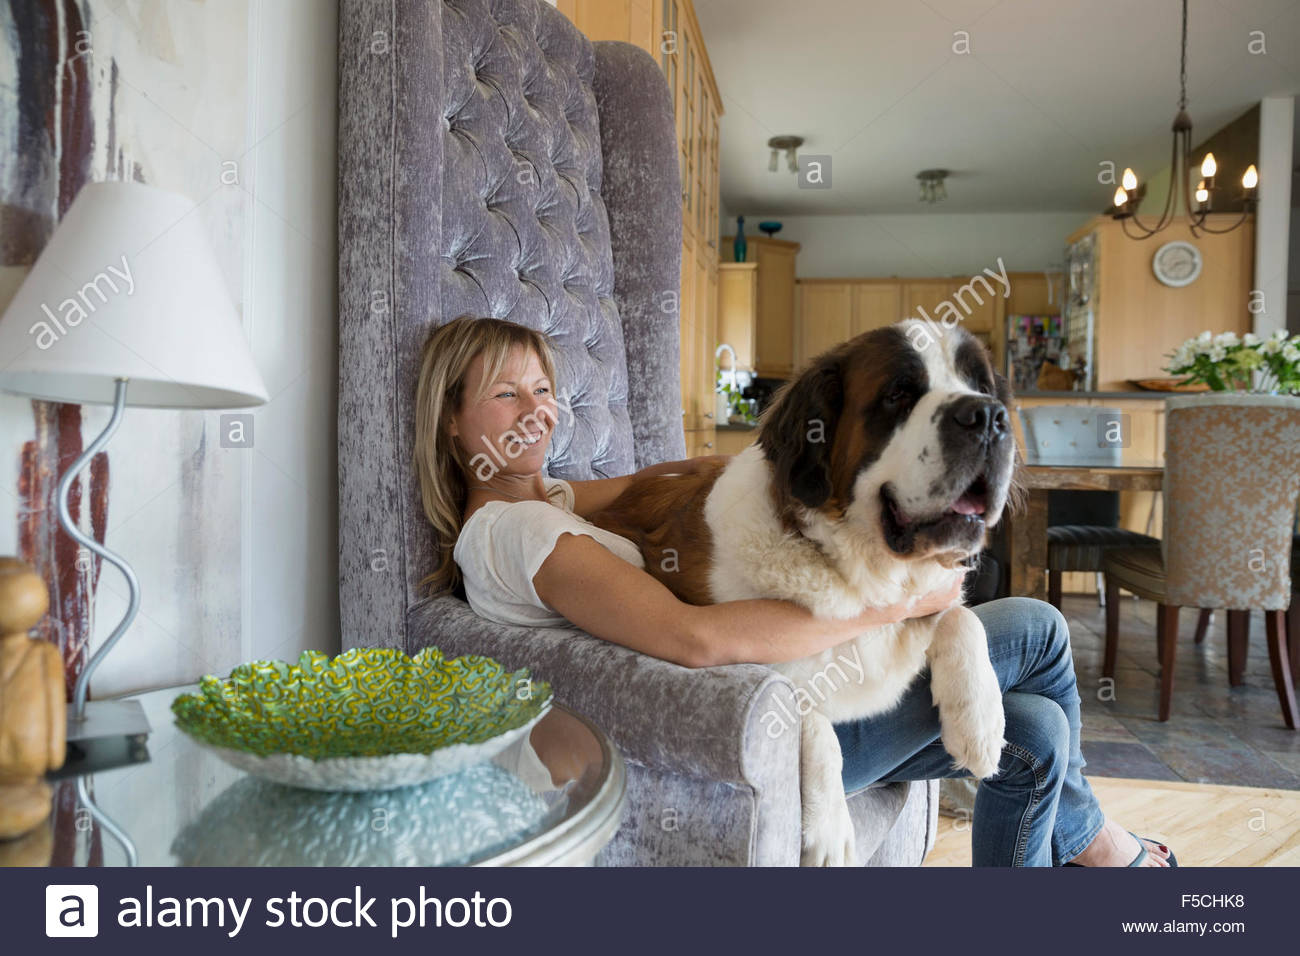 Saint Bernard dog sitting on woman's lap armchair - Stock Image